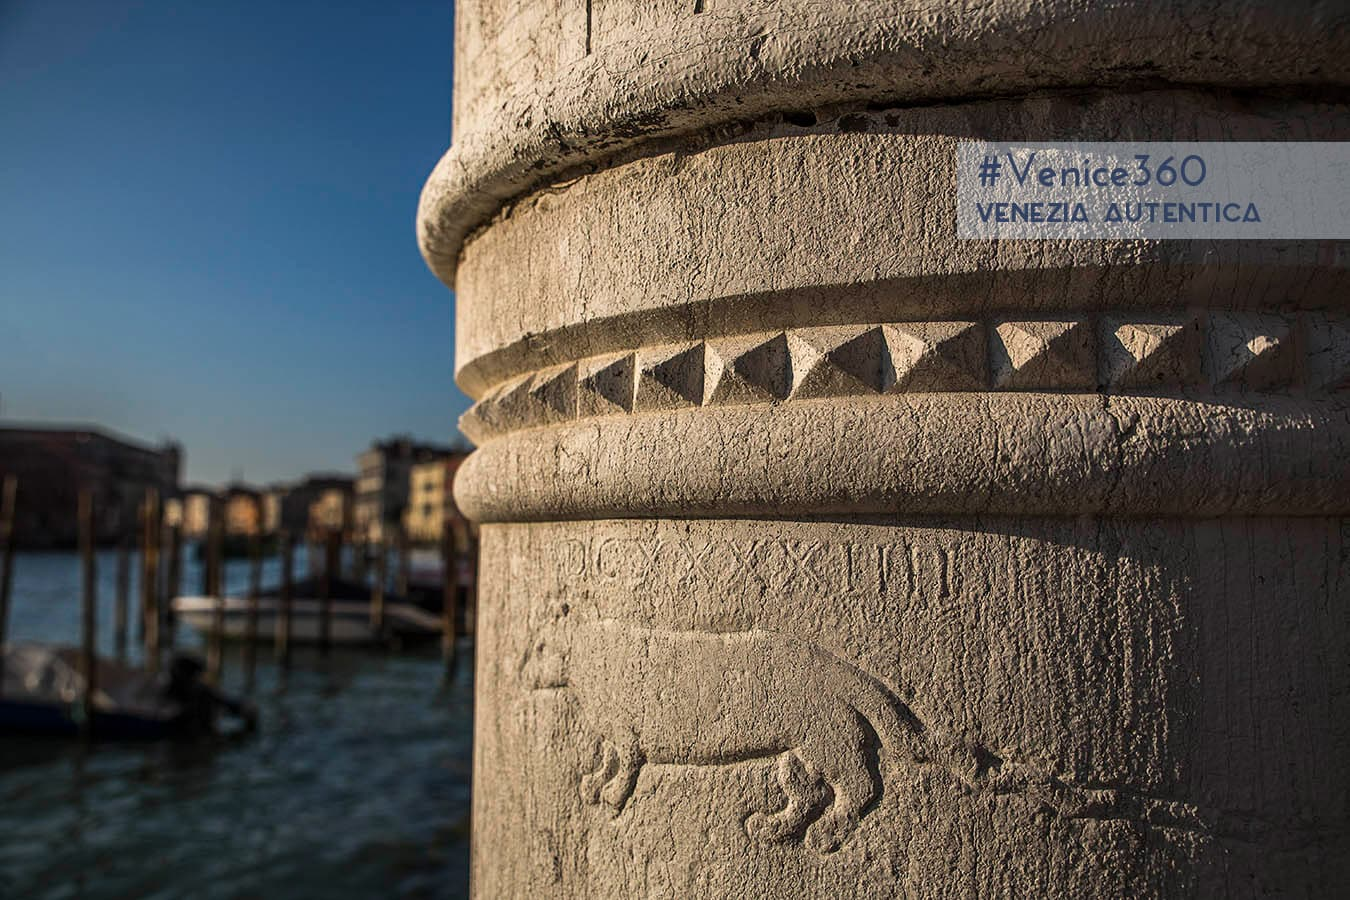 Carving of a rat in Venice, on a column on the Grand Canal. Origins are unknown.